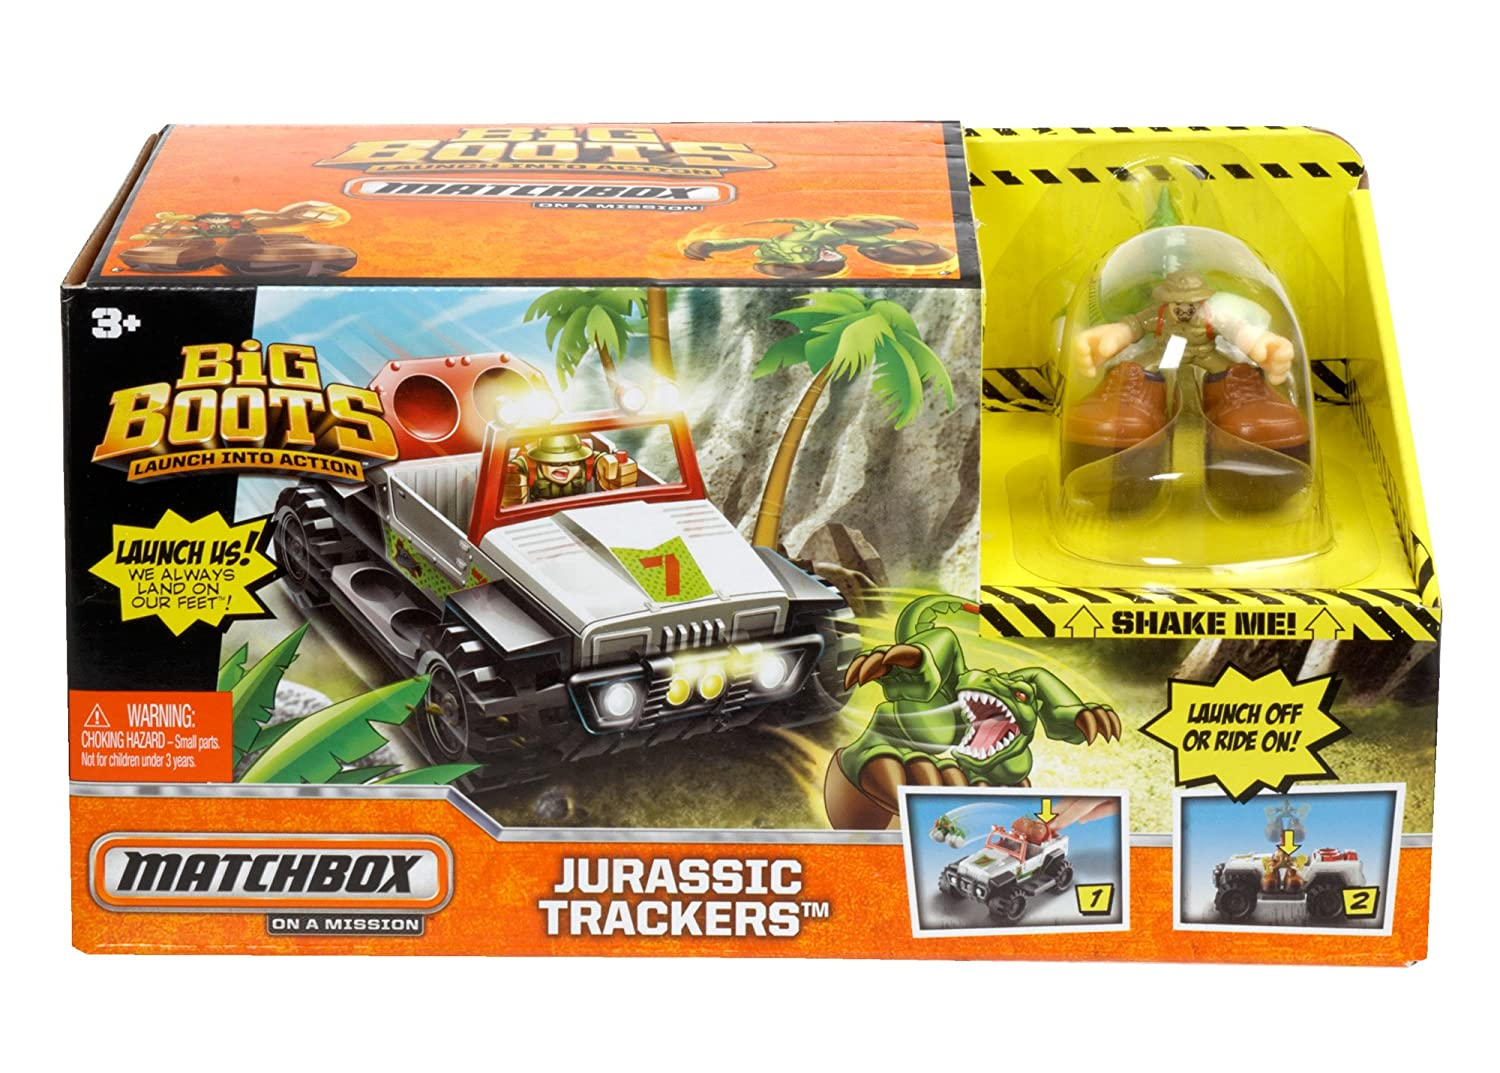 Matchbox Big Boots Play set – Jurassic Trackers – Includes Truck and 2 Characters jetzt kaufen